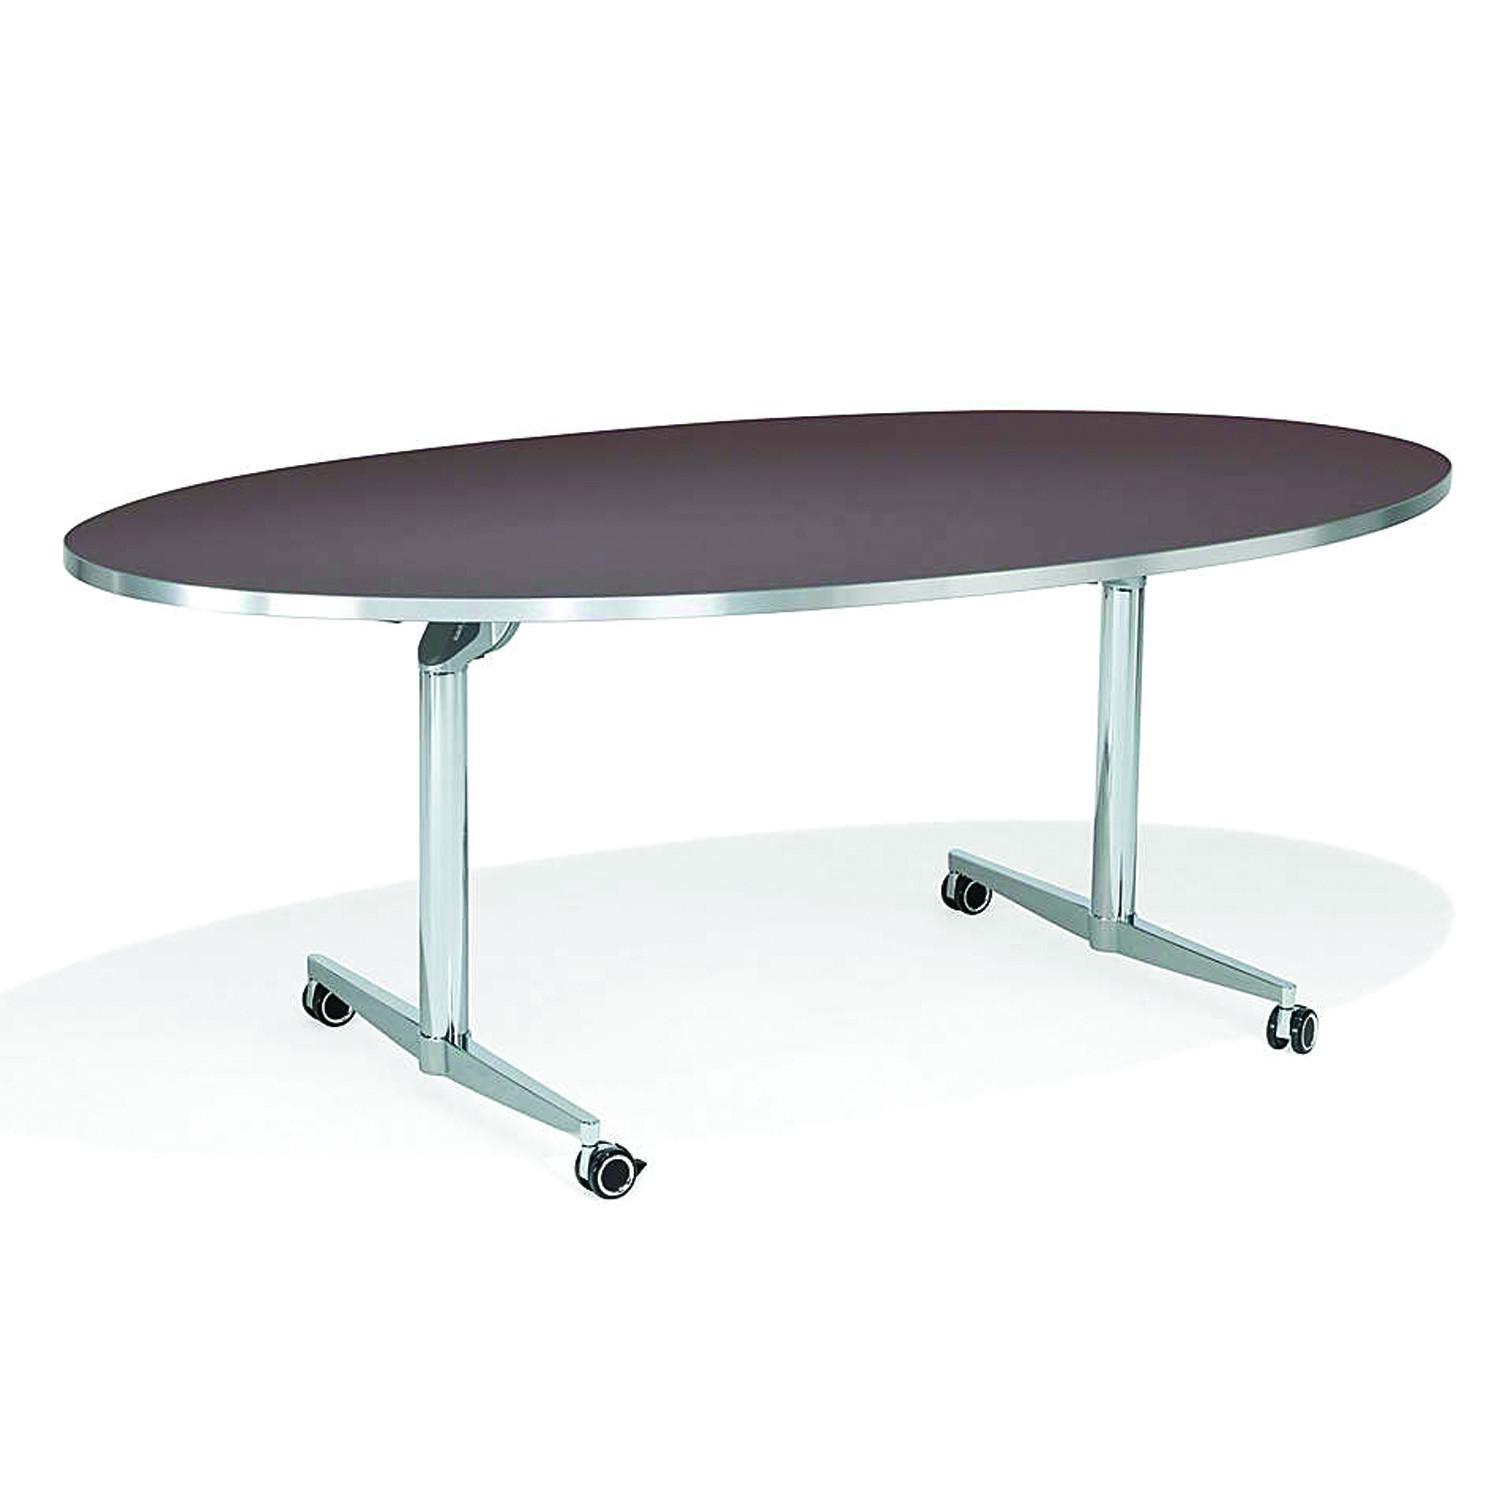 6000 San_Siro Oval Meeting Table with castors